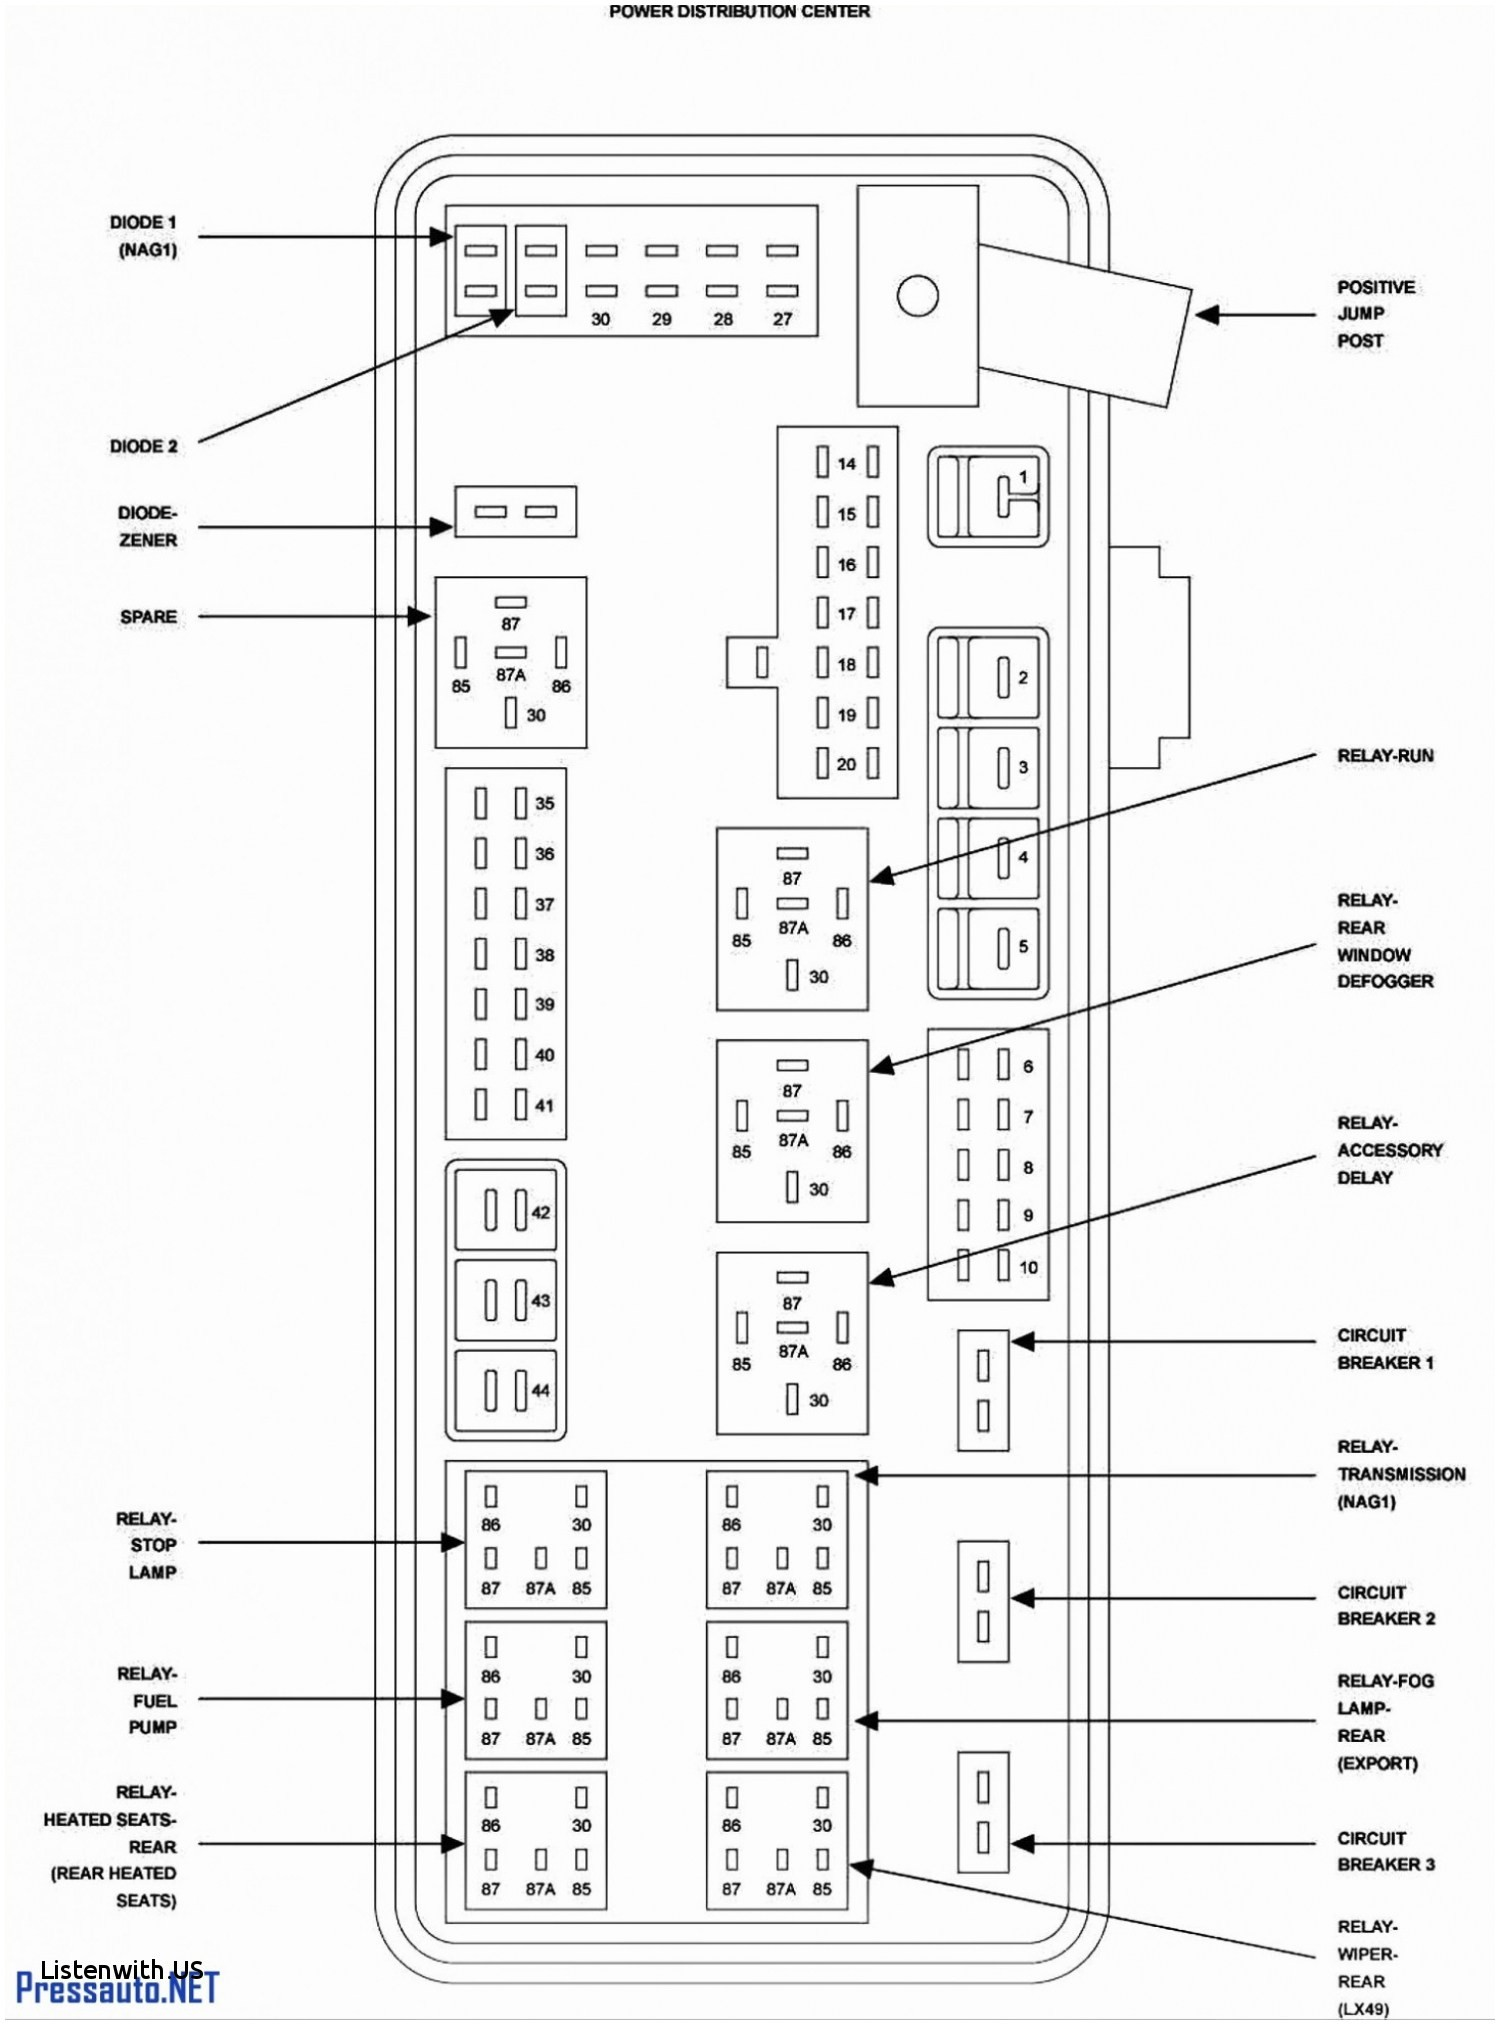 Factory Wiring Diagrams Car Audio Factory Car Stereo Diagrams Of Factory Wiring Diagrams Car Audio Factory Car Stereo Diagrams